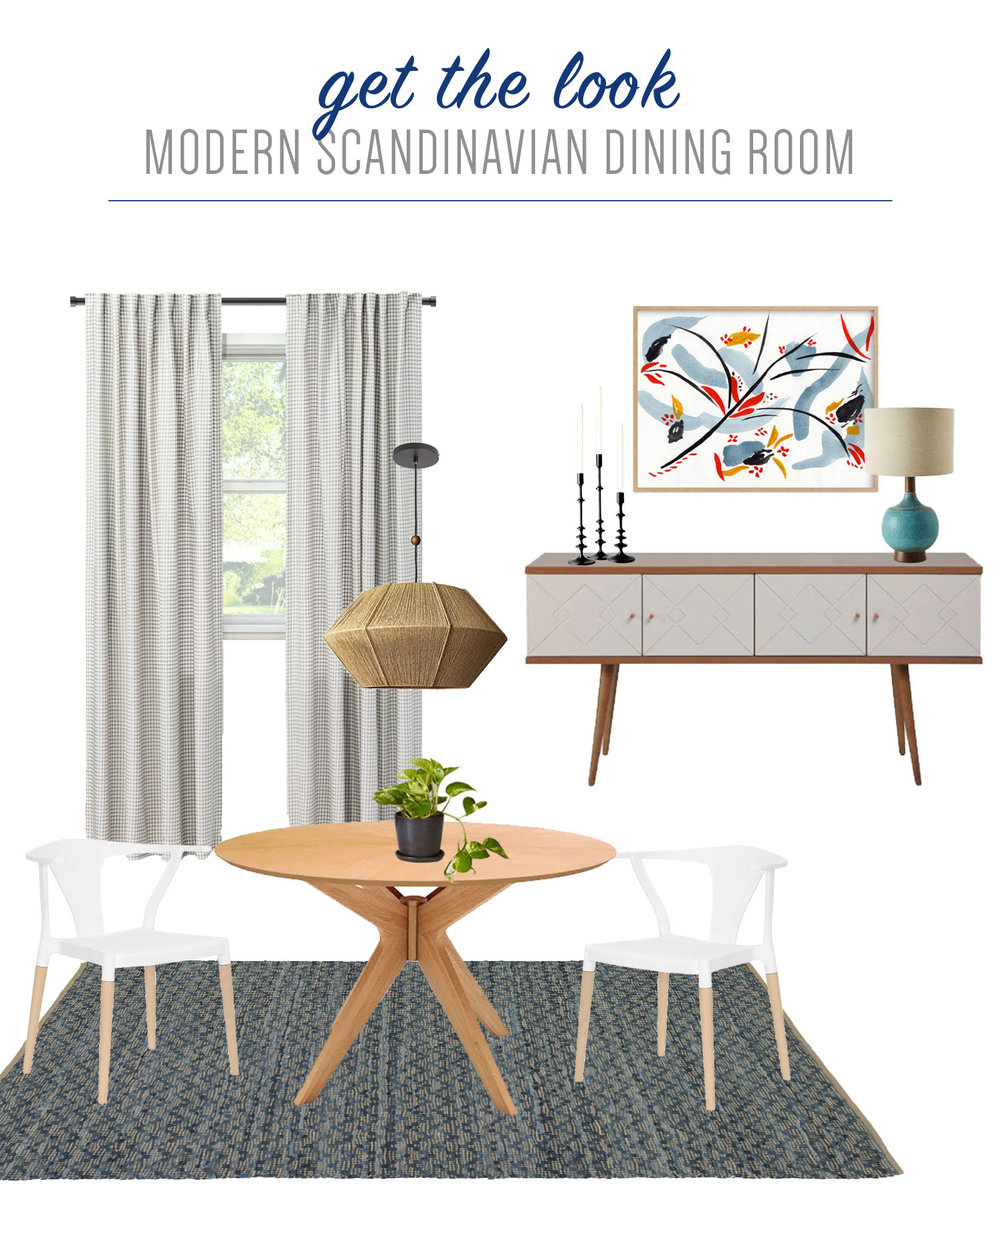 Get the look of this small scale modern Scandinavian dining room on the Mix & Match Design Company Blog. This minimalist dining room with clean lines, light wood accents, and a round dining table feels laid back and casual.